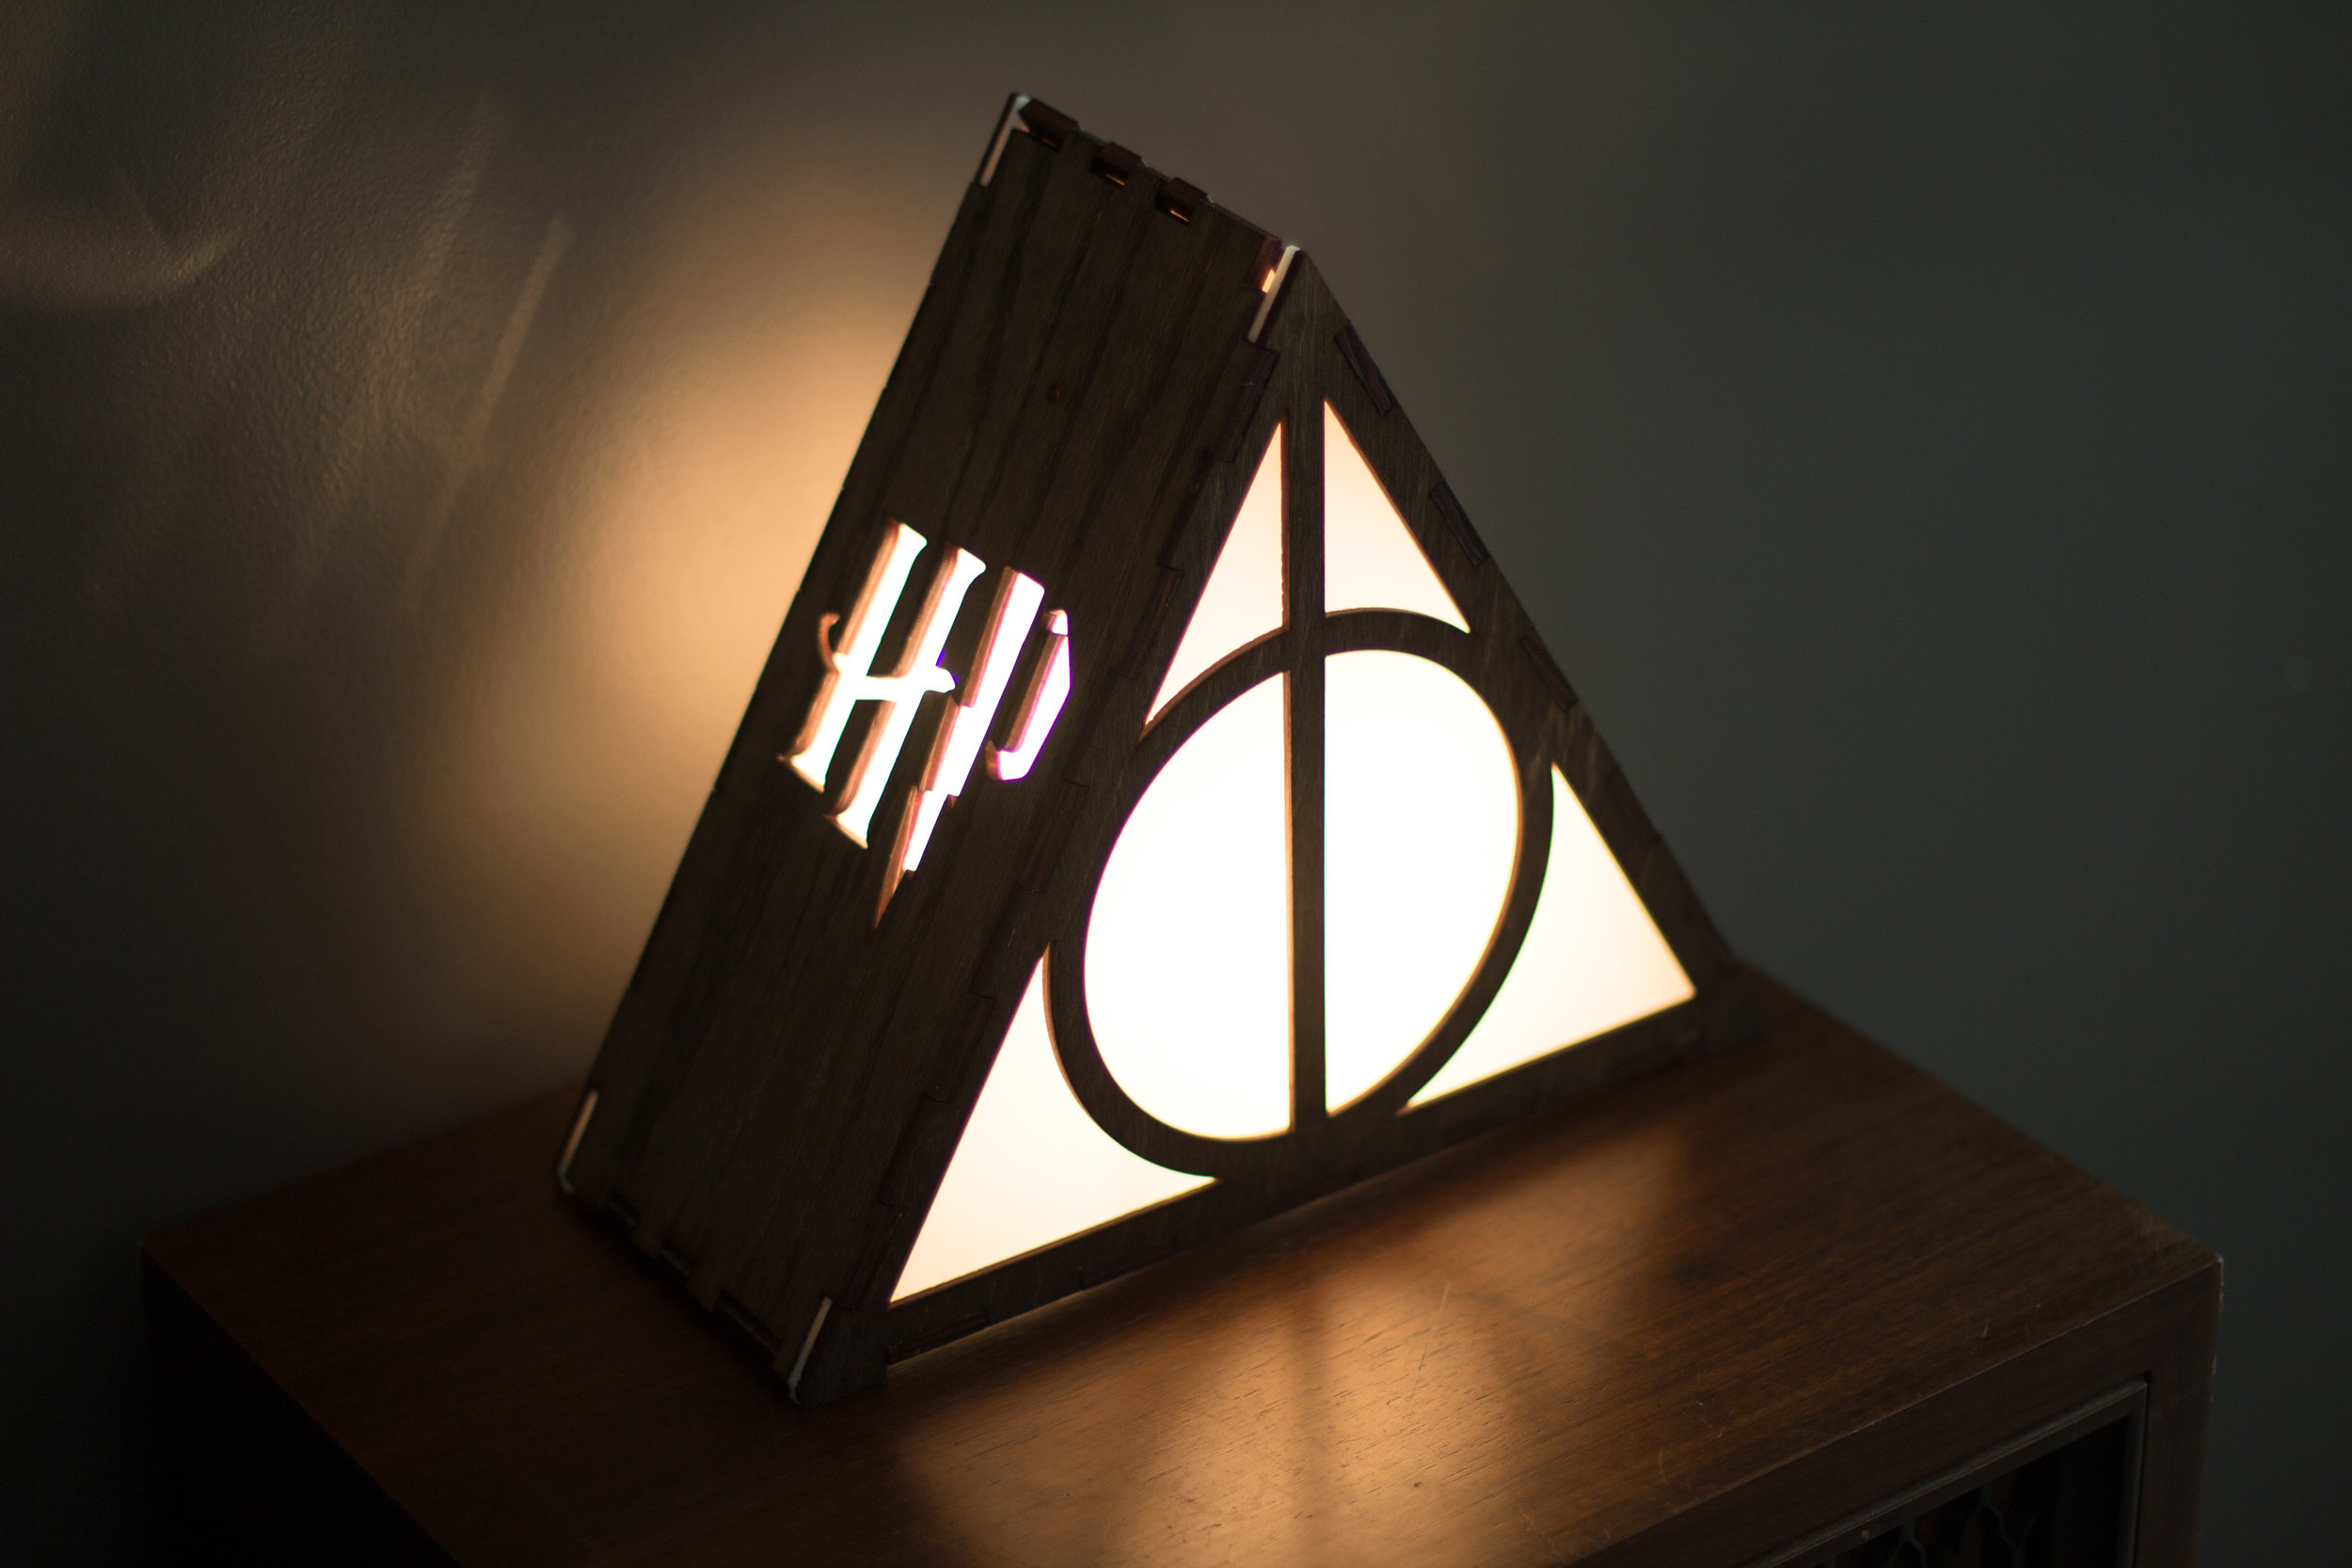 Deathly Hallows lamp 2